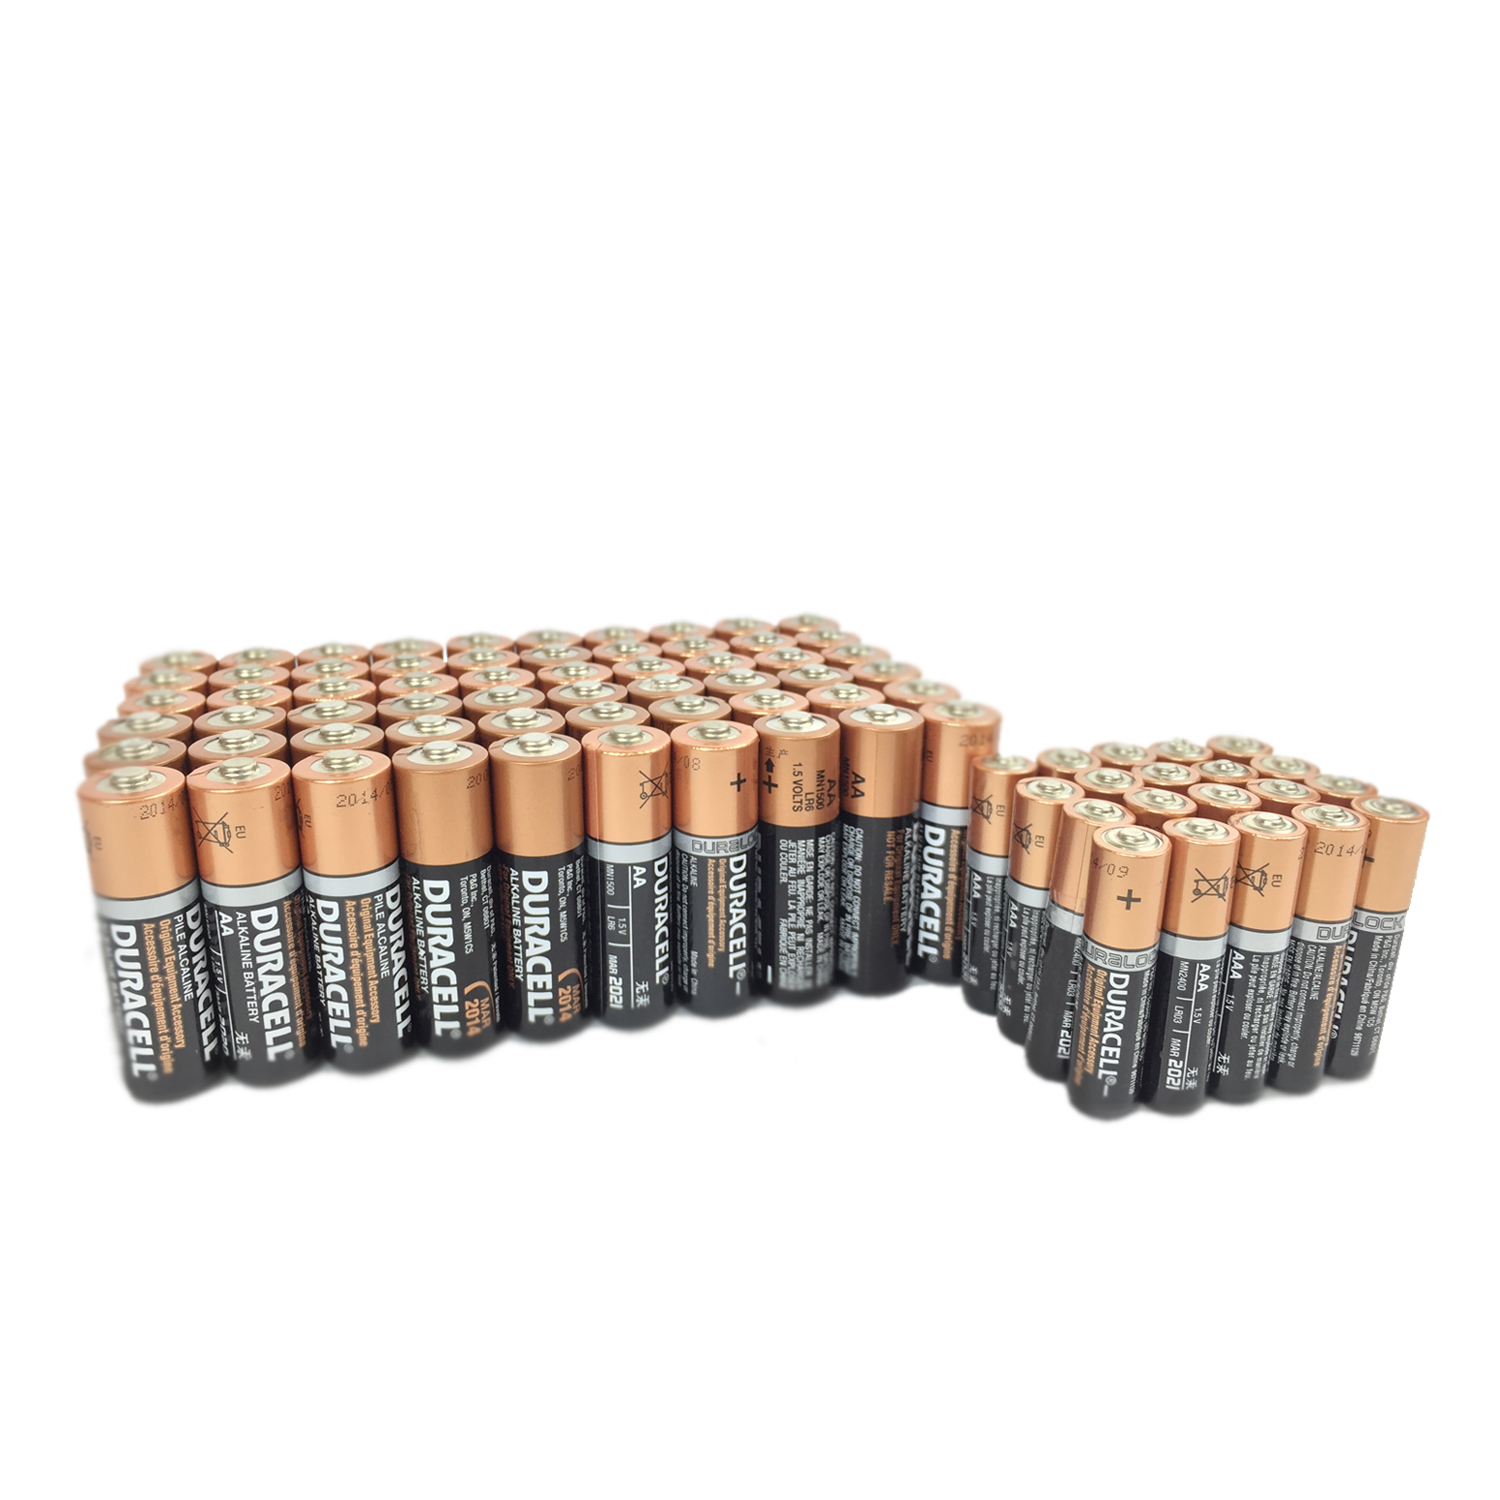 Duracell 60 AA + 20 AAA Copper Top Alkaline Duralock Long Lasting Batteries